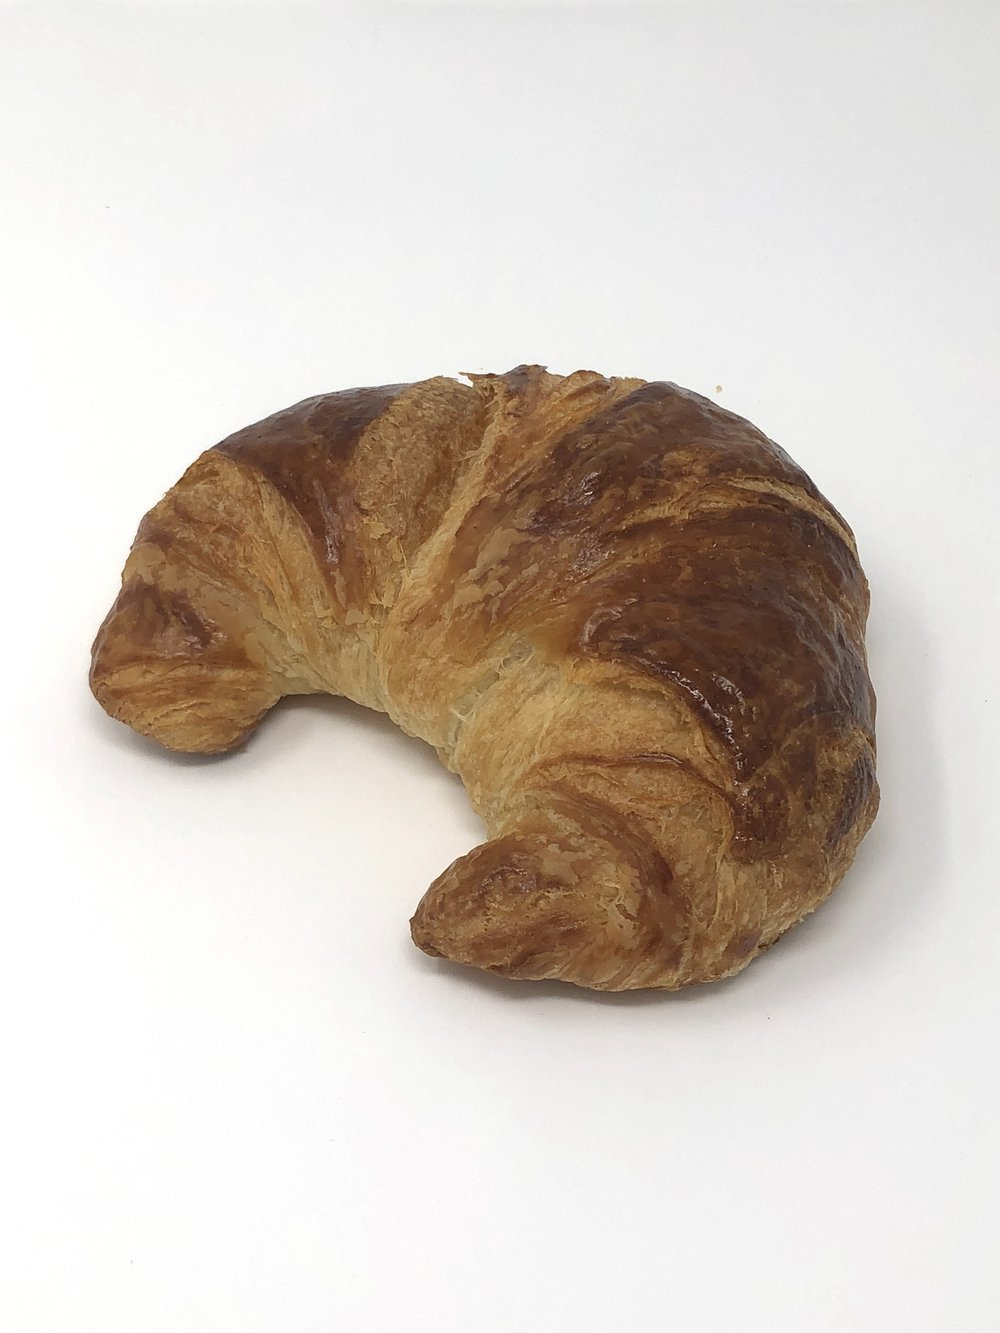 ALL BUTTER CROISSANT - AVAILABLE AT ALL LOCATIONS!